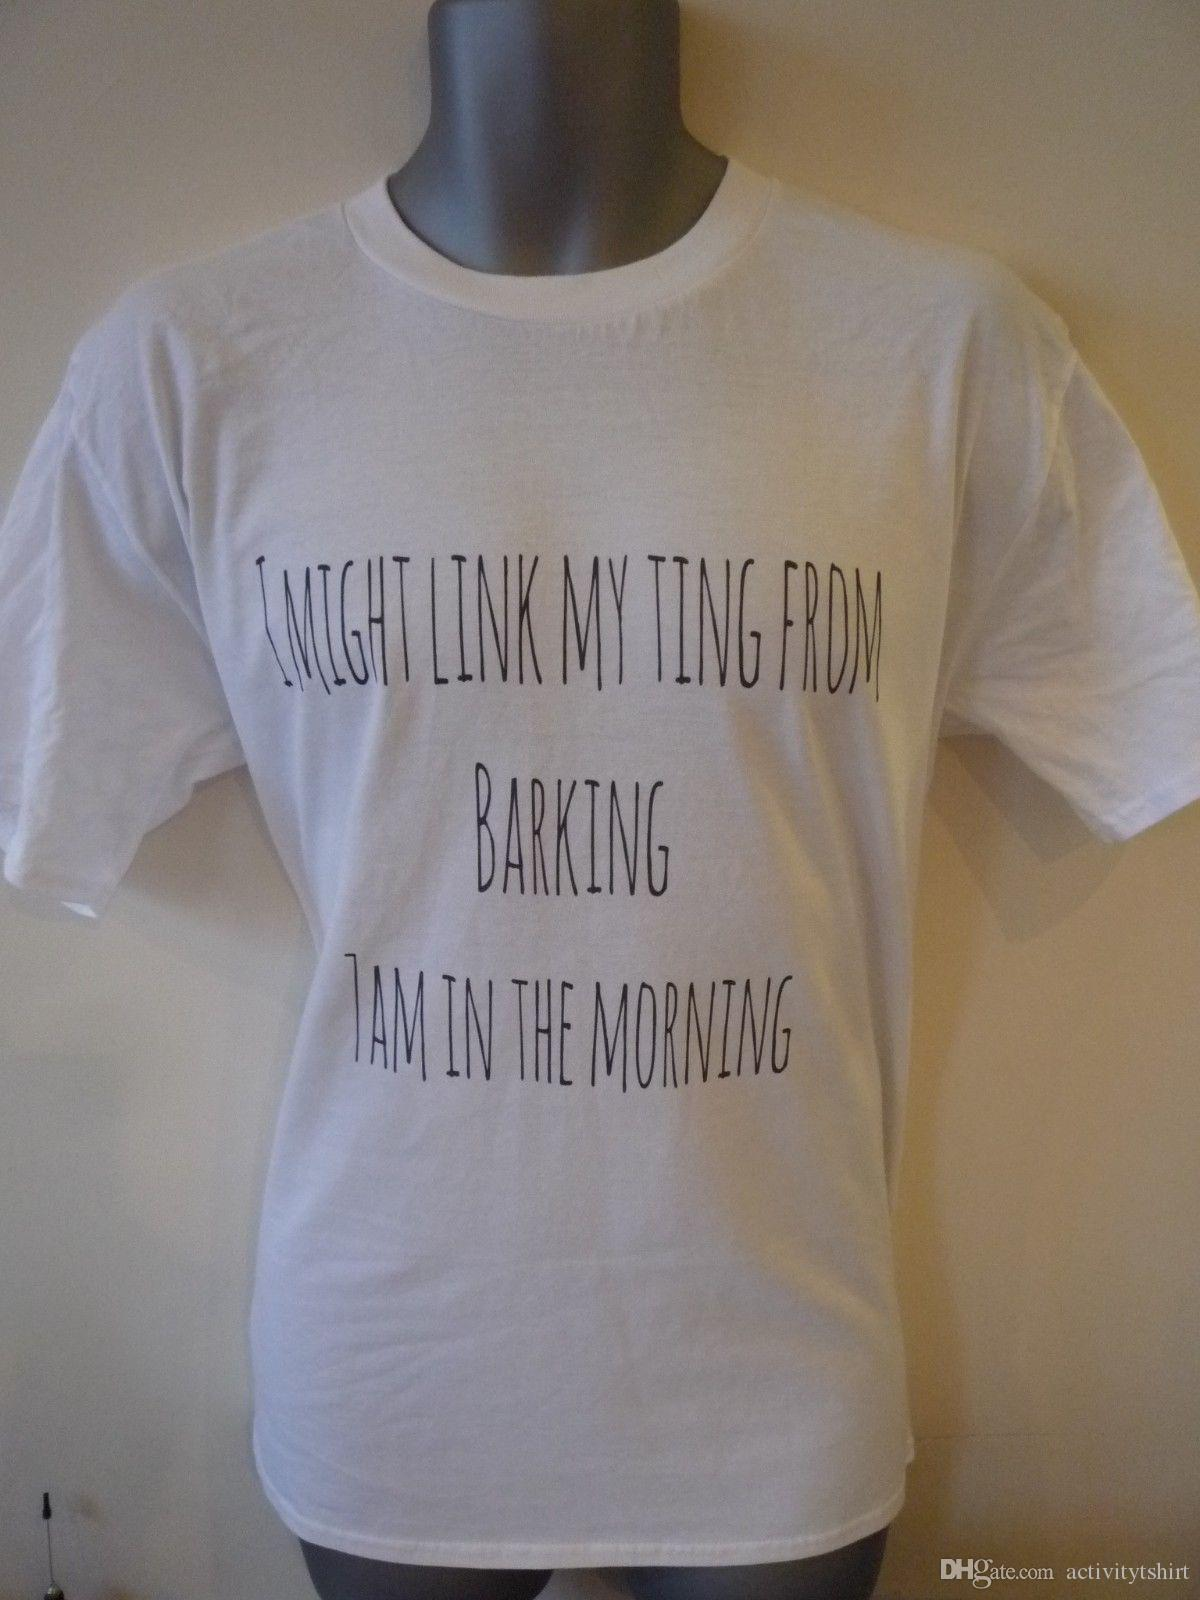 Ramz I Might Link My Ting From Barking 7am In The Mornings Kids T Shirt Best Tshirts Cool T Shirts Online From Activitytshirt 12 18 Dhgate Com